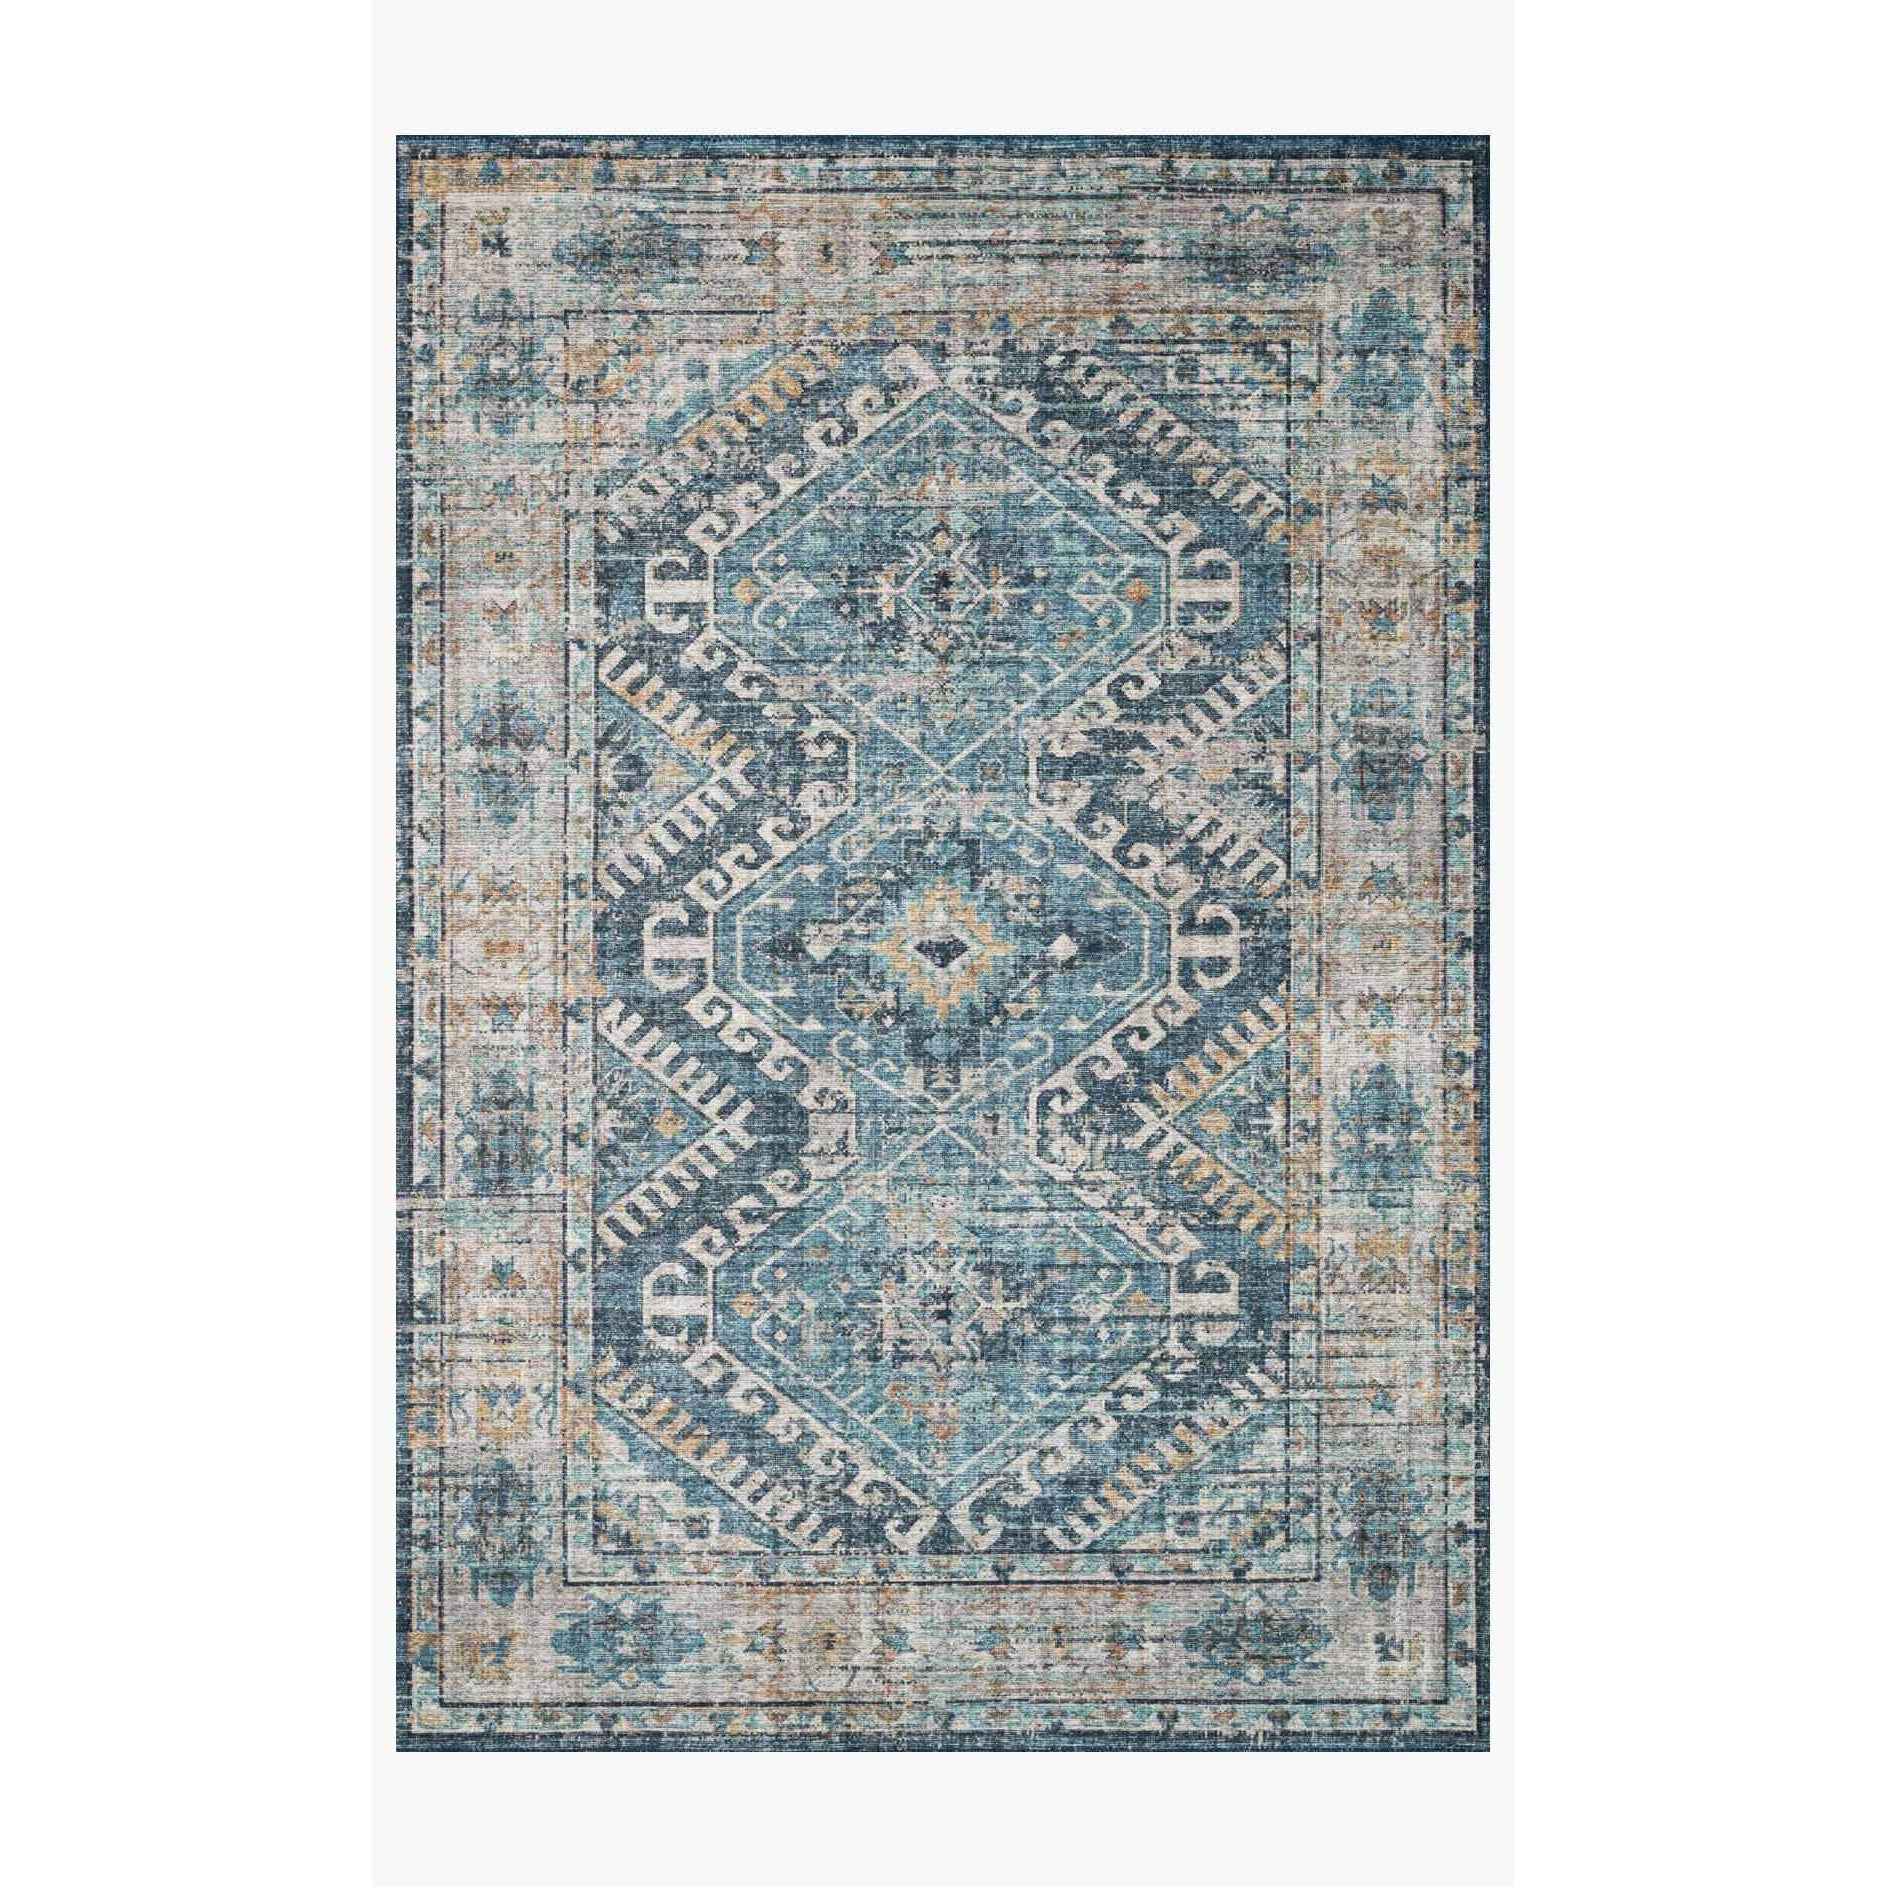 Skye Rug Collection by Loloi -Sky 03 Denim/Natural-Loloi Rugs-Blue Hand Home